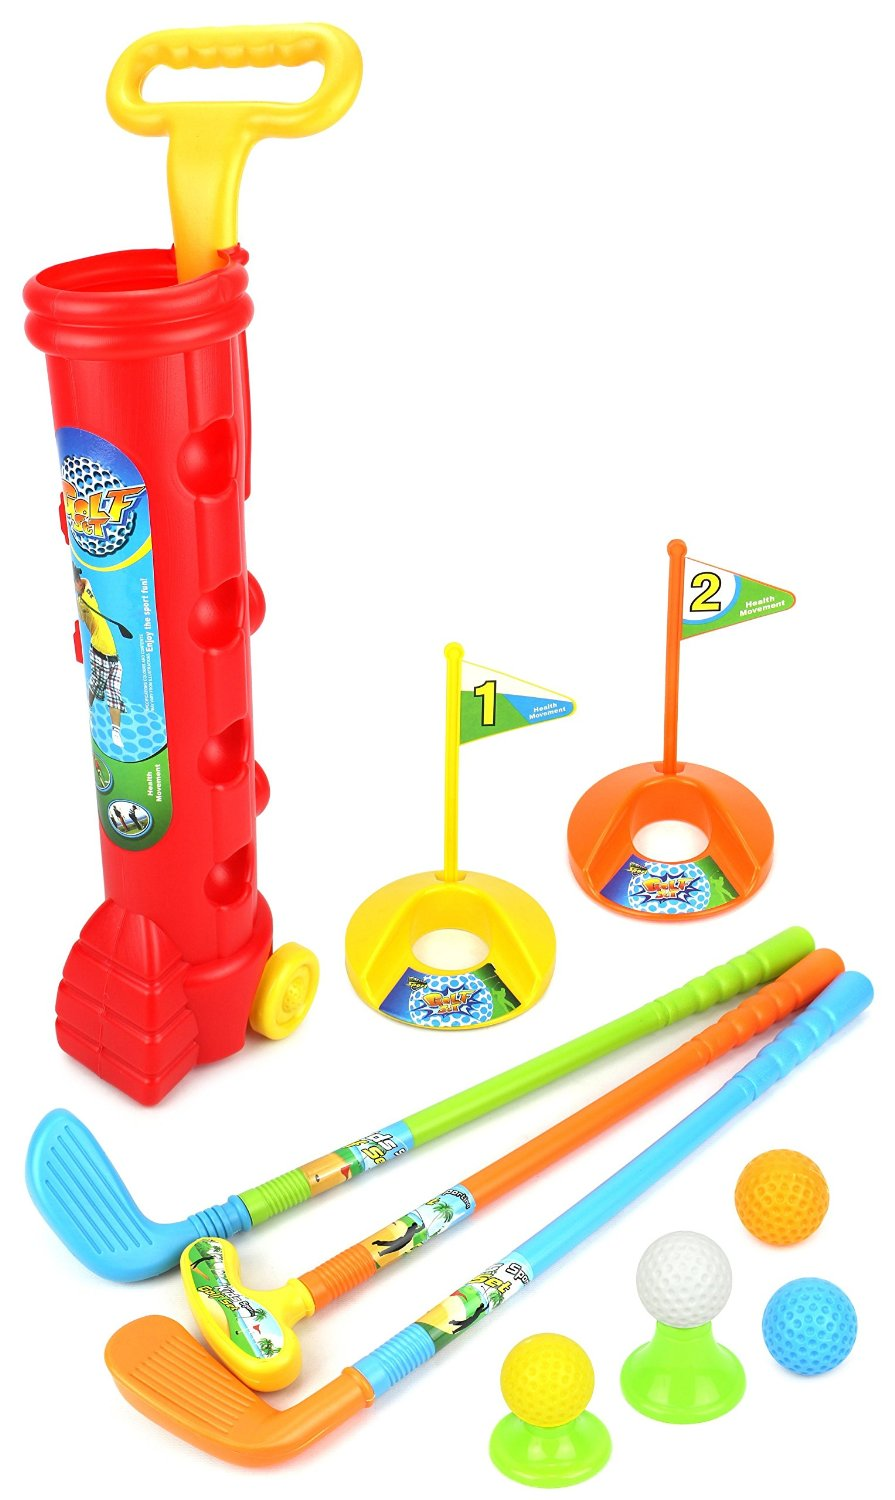 Toy Golf Set for Children Kid's Lil Golfers Toy Golf Play Set w  4 Balls, 3 Clubs, 2 Practice Holes, 2 Flags,... by Velocity Toys